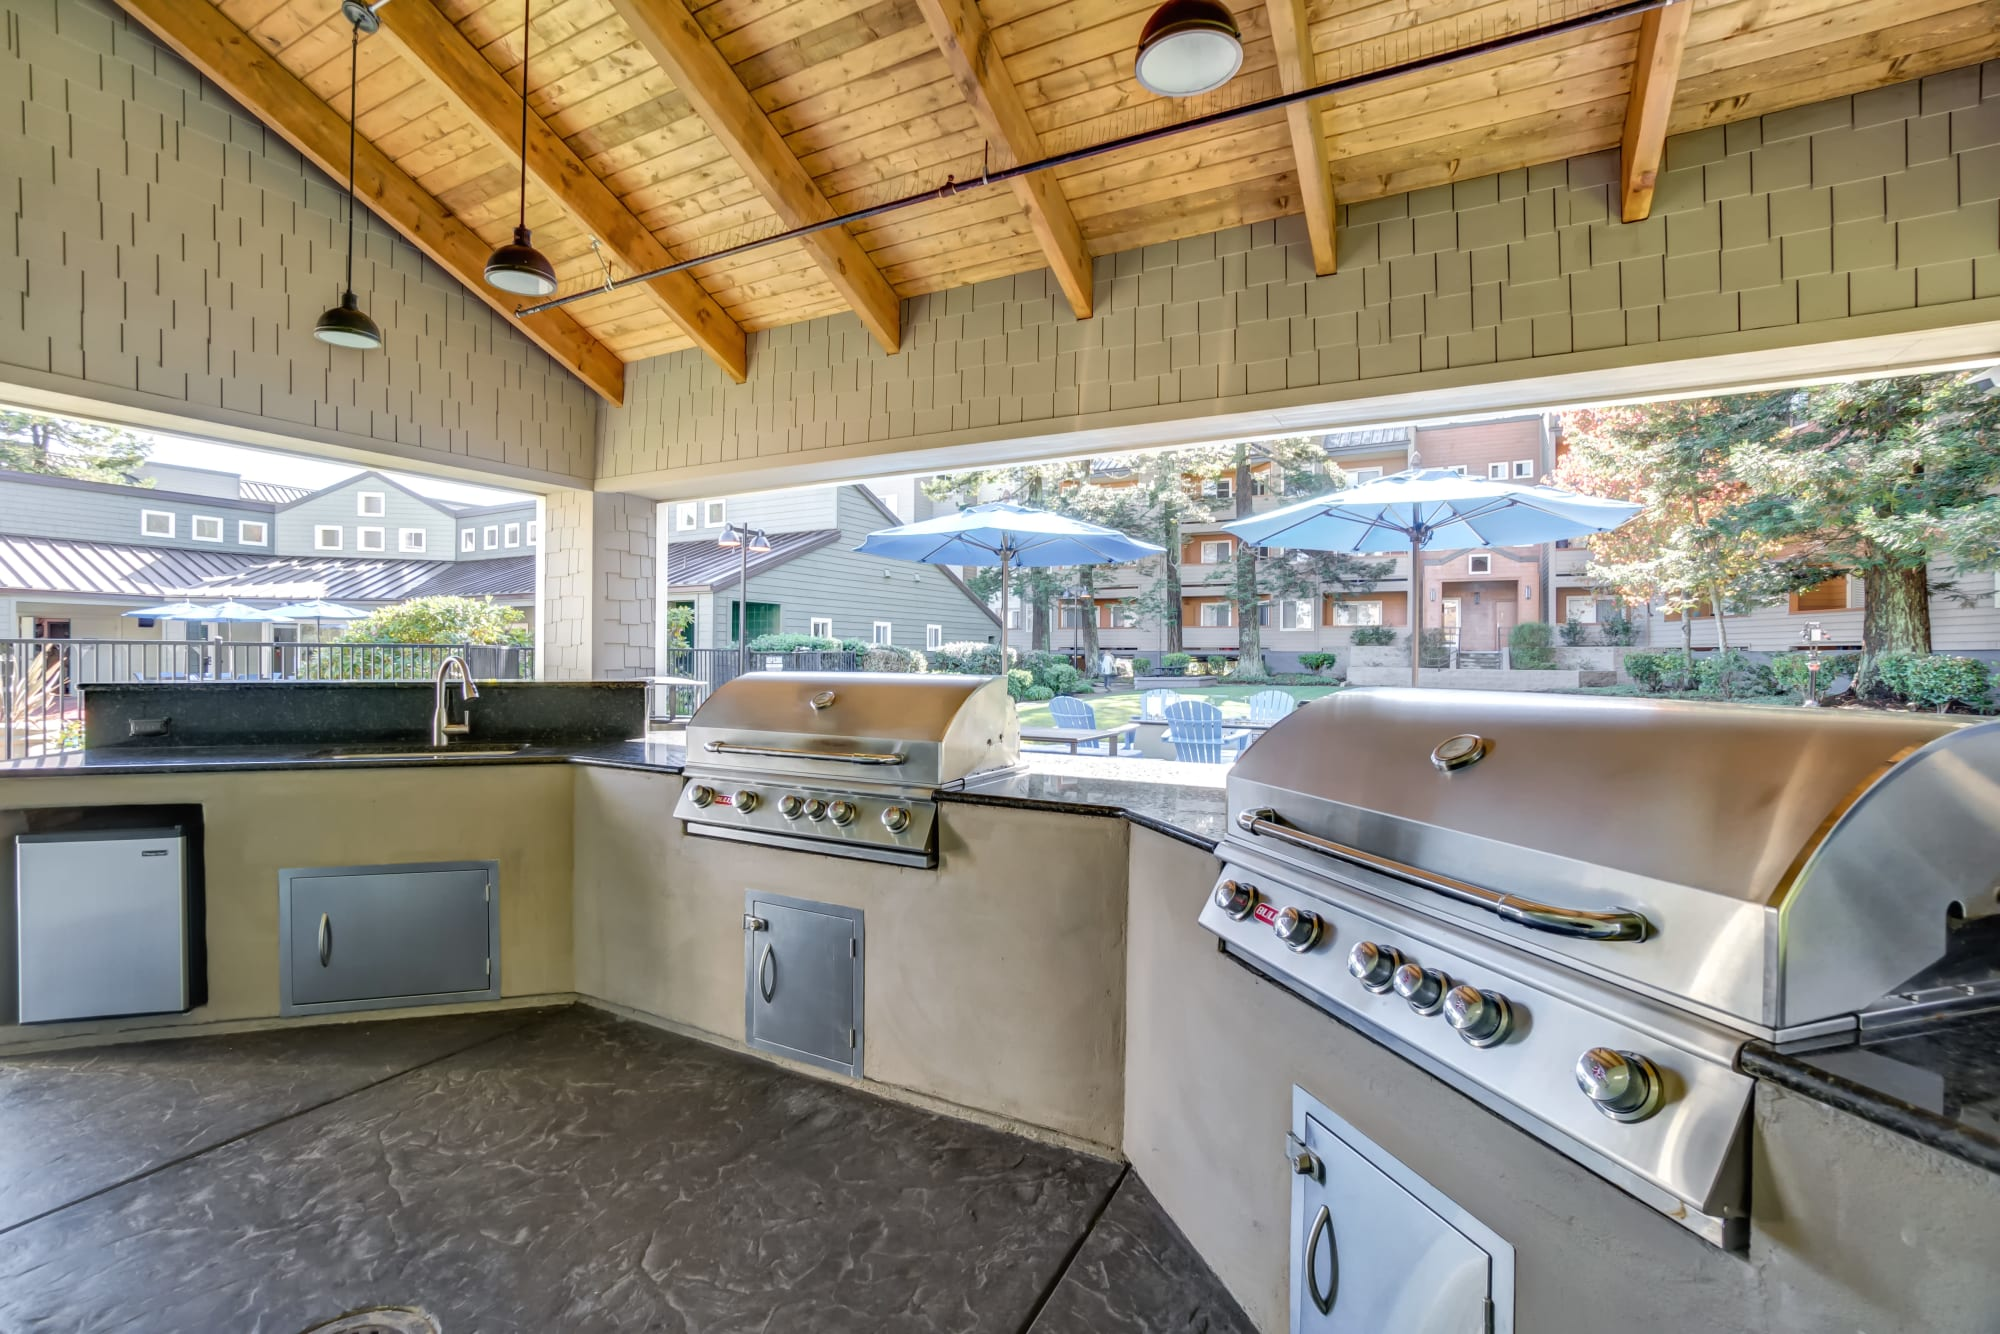 The BBQ station, perfect for entertainment at Serramonte Ridge Apartment Homes in Daly City, California